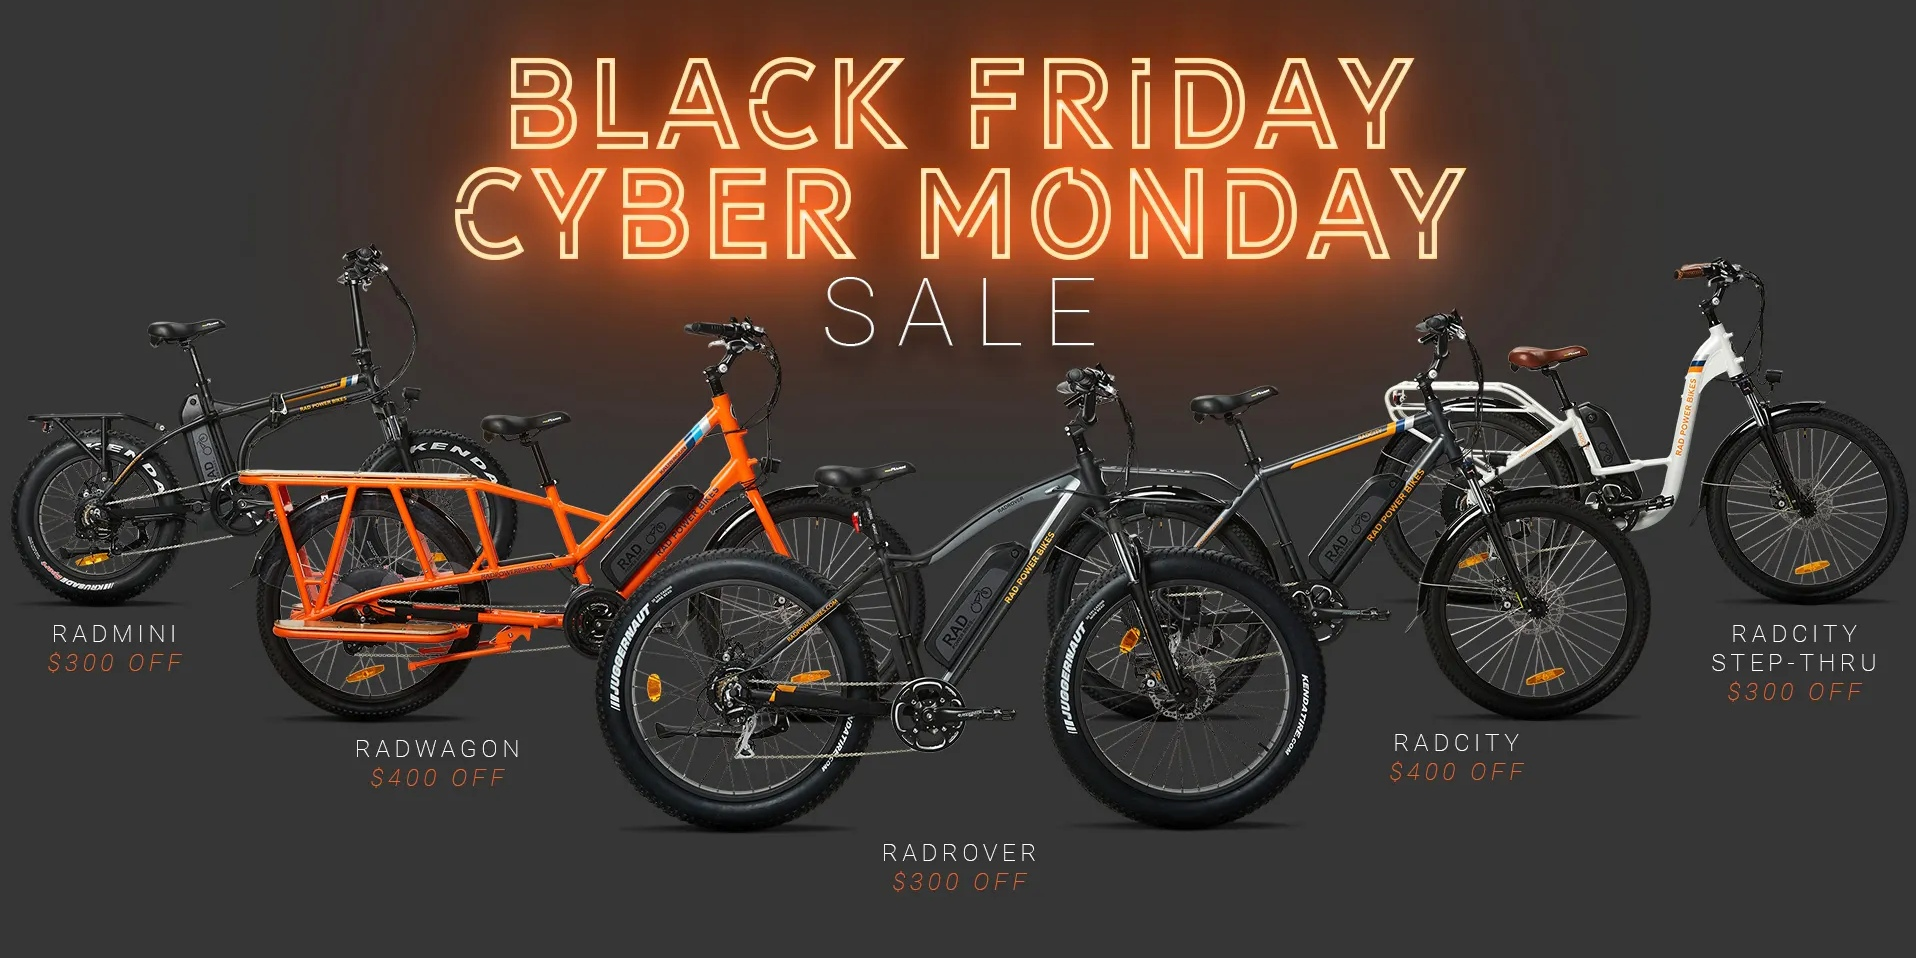 Looking for an electric bike or scooter? Here's your Black Friday deals preview